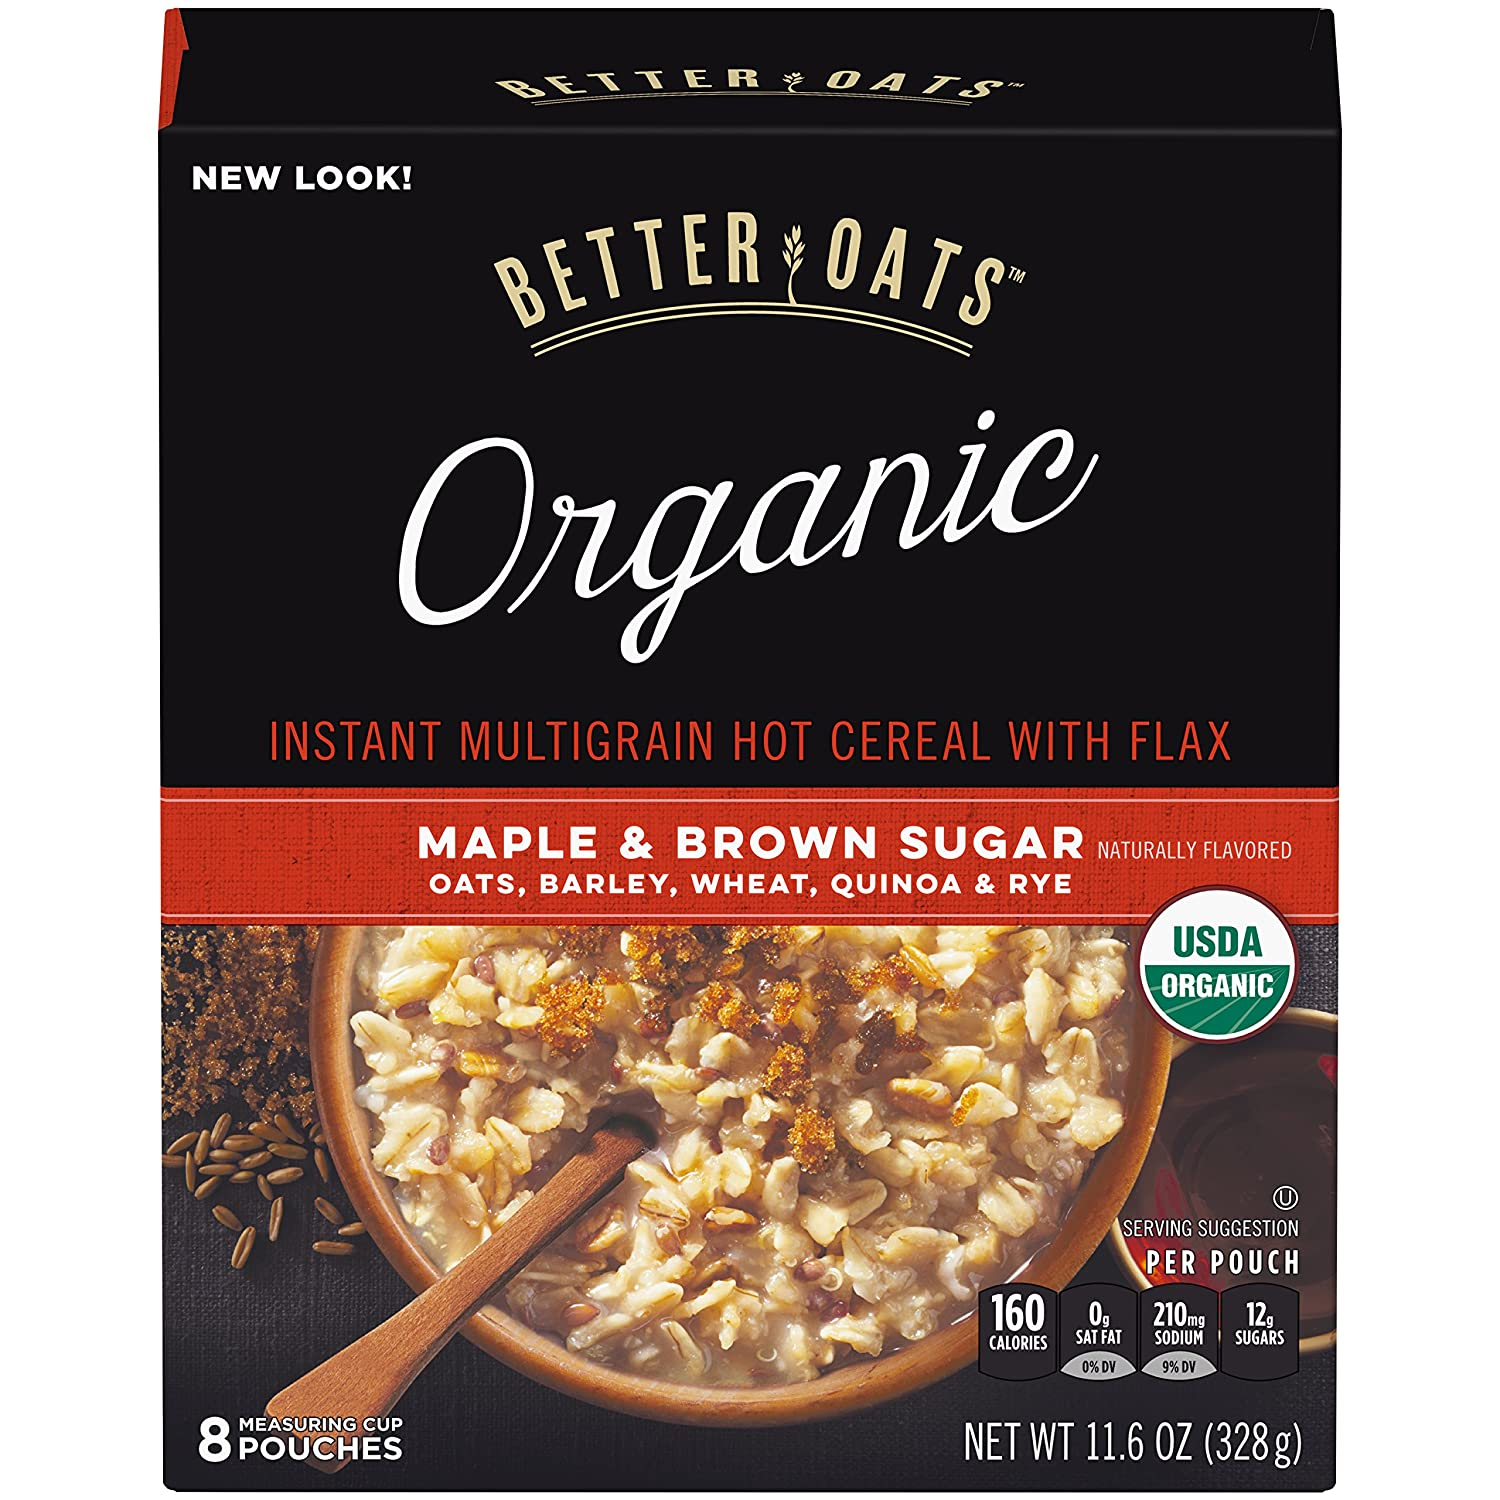 Better Oats, Organic Instant Oatmeal, Maple & Brown Sugar, 8 Ct